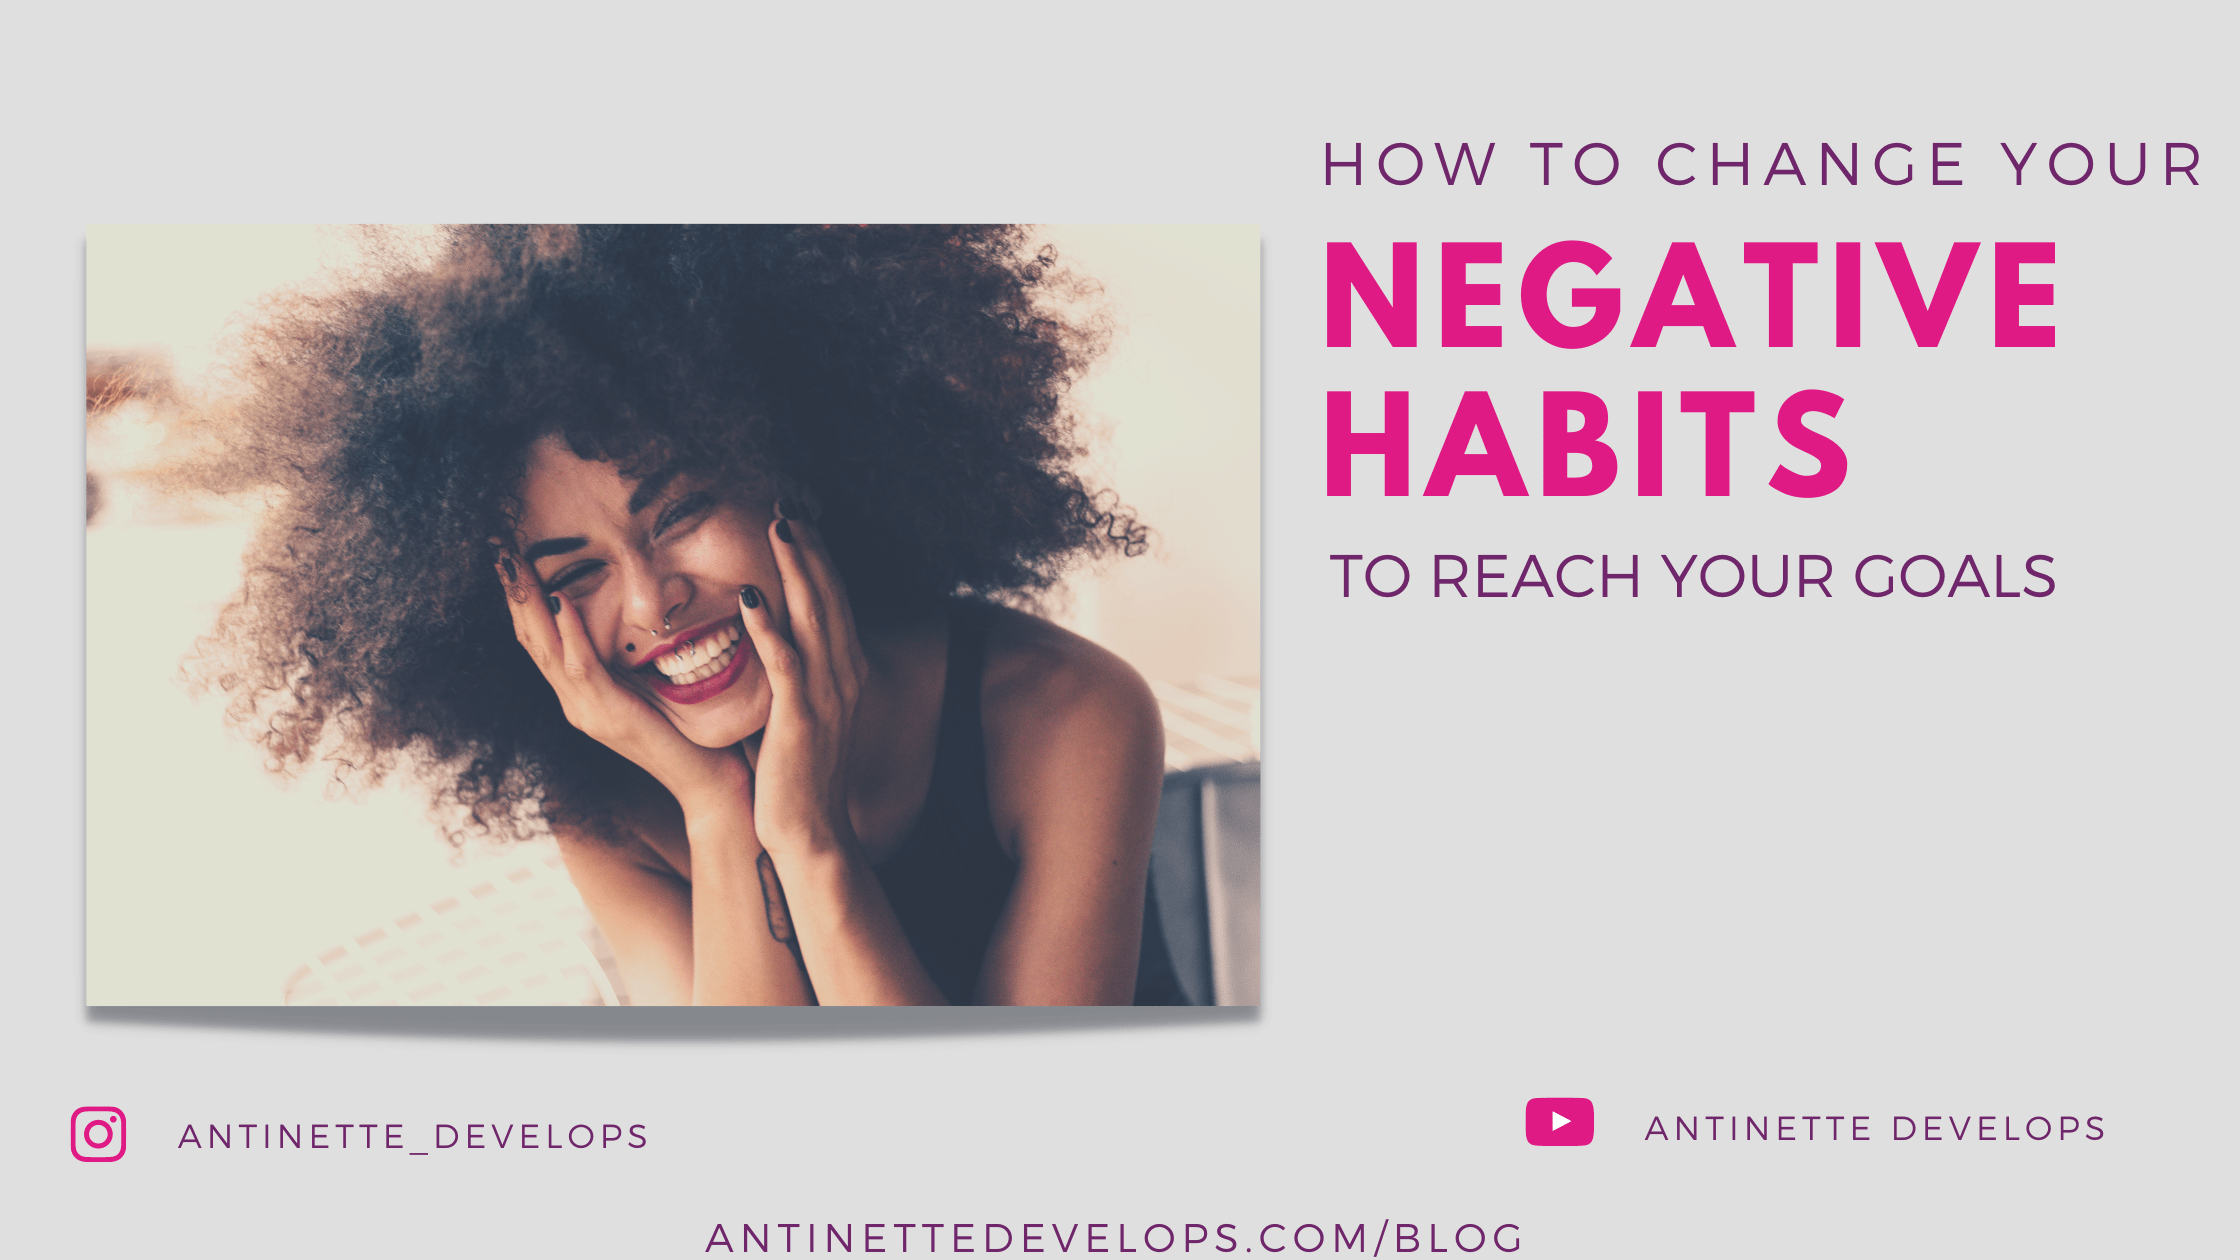 How To Change Your Negative Habits To Reach Your Goals